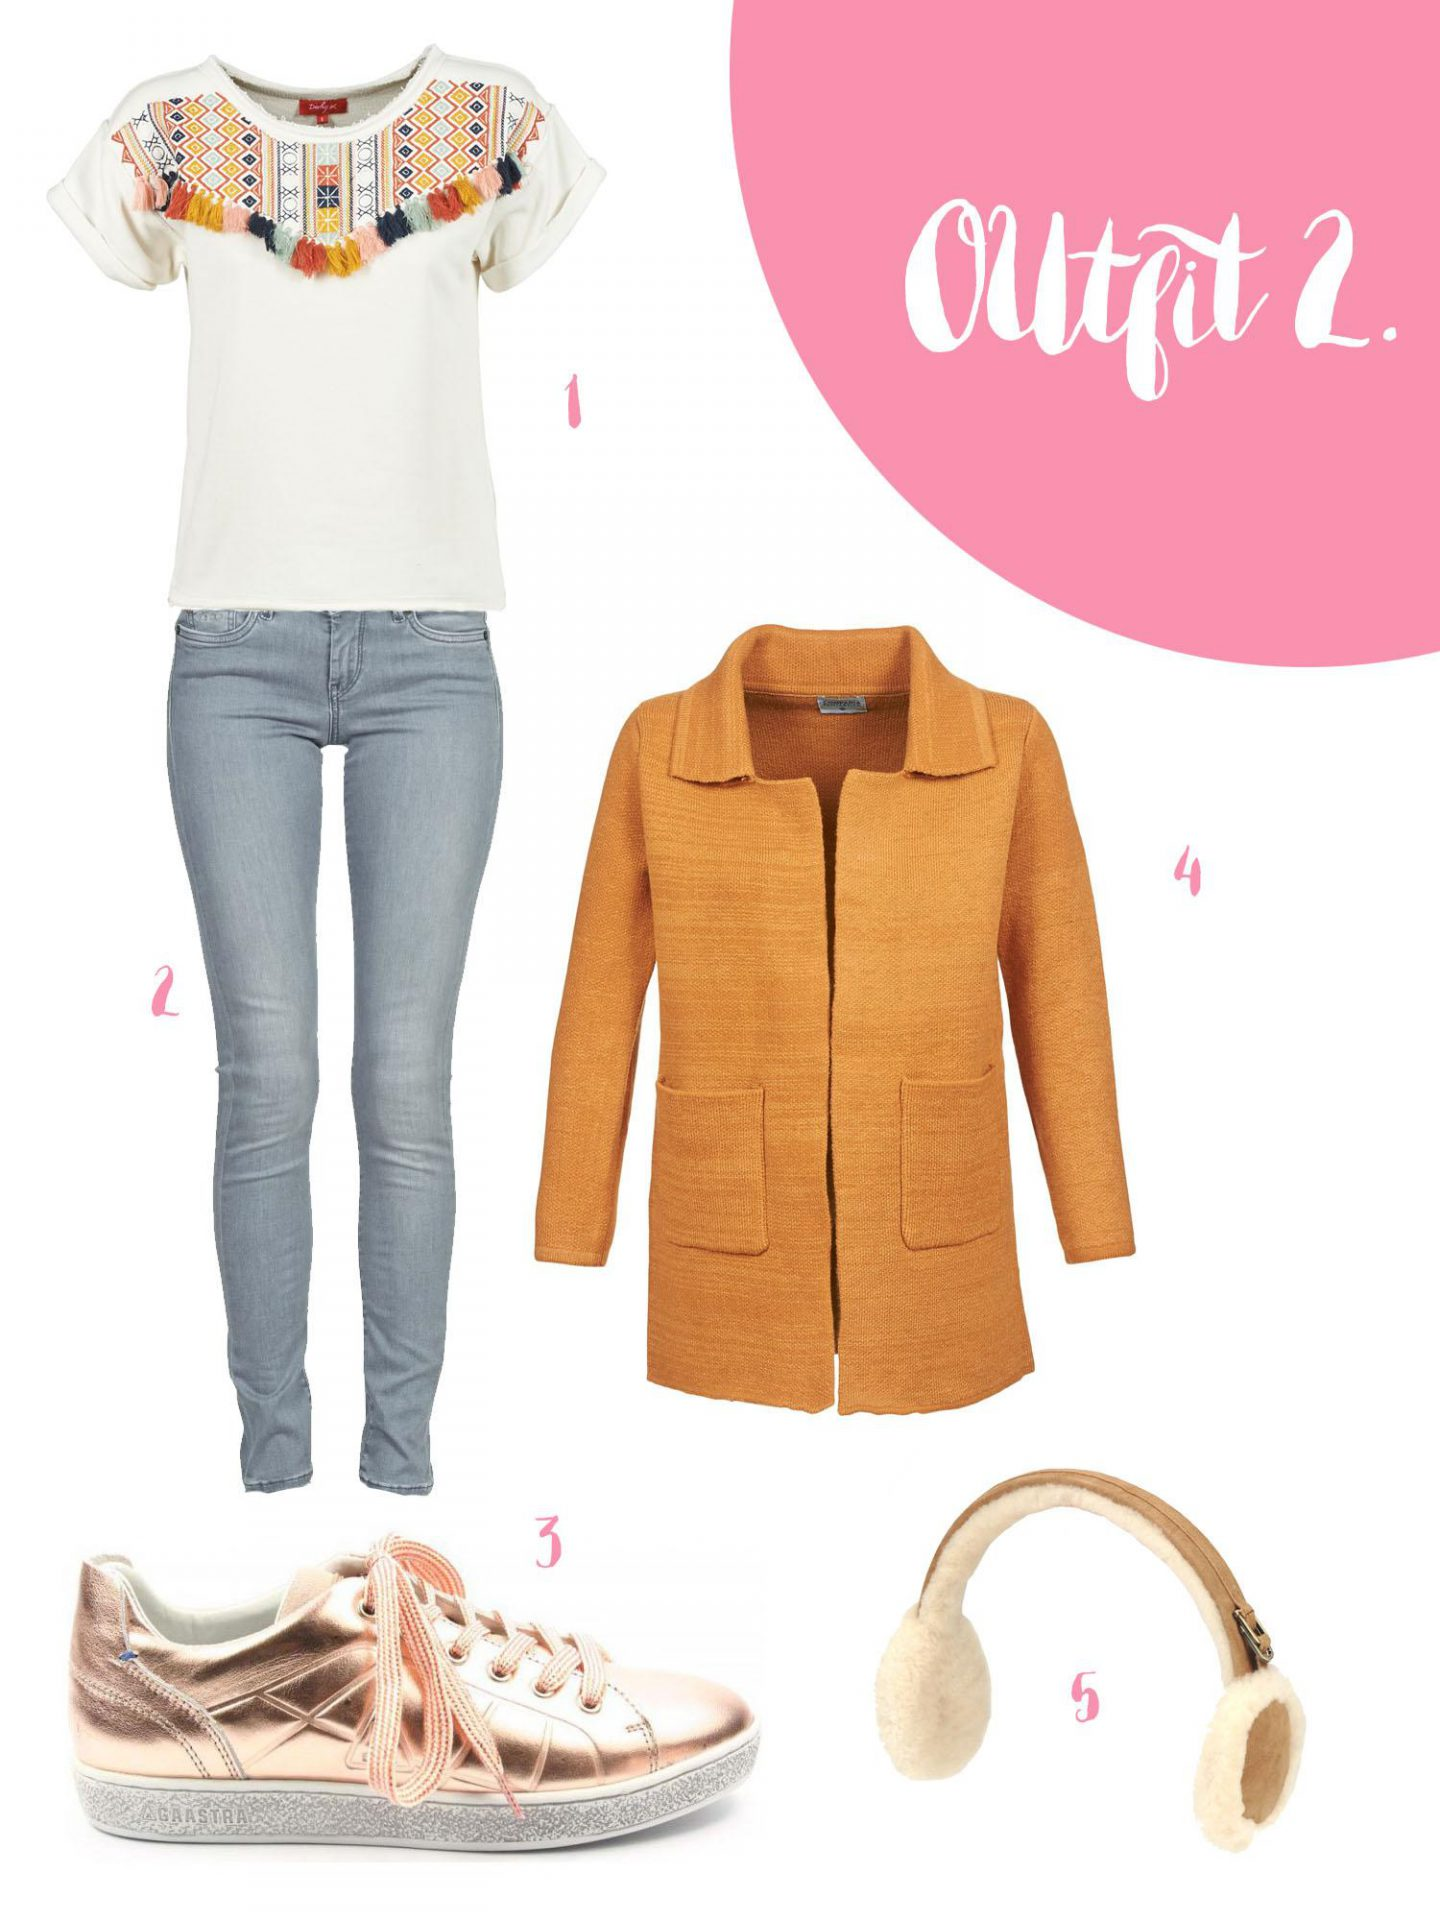 Outfit 2 - outfit inspiratie sale Spartoo